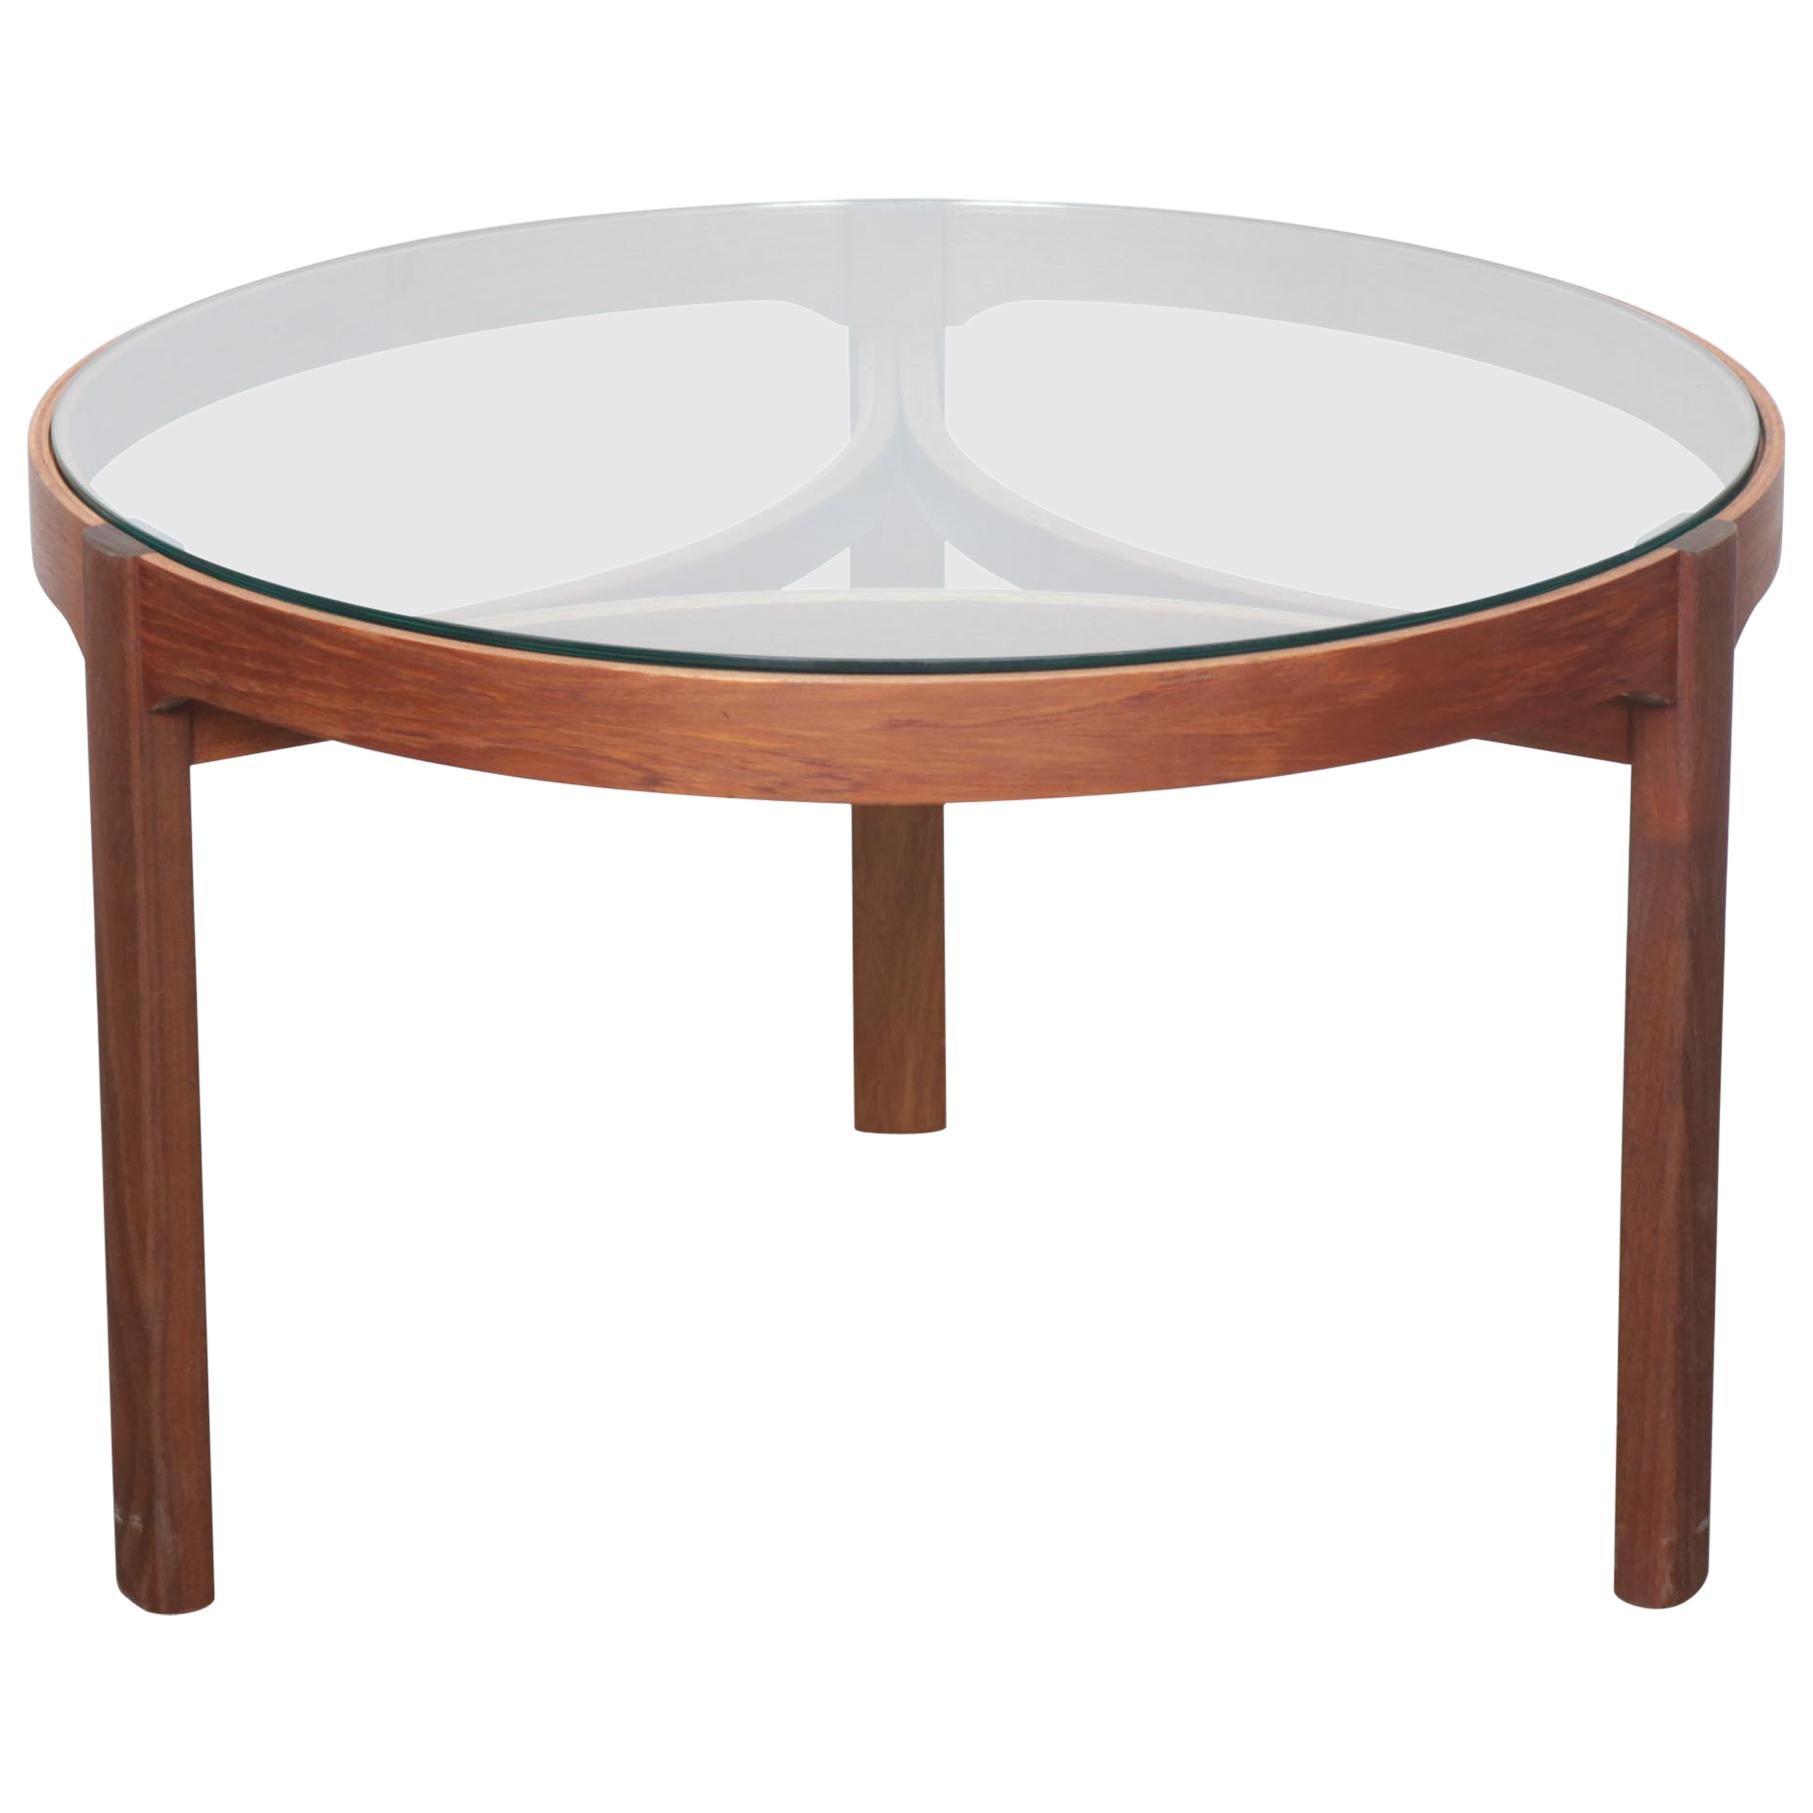 Superieur Teak And Glass Top Round Coffee Table By Nathan, England For Sale